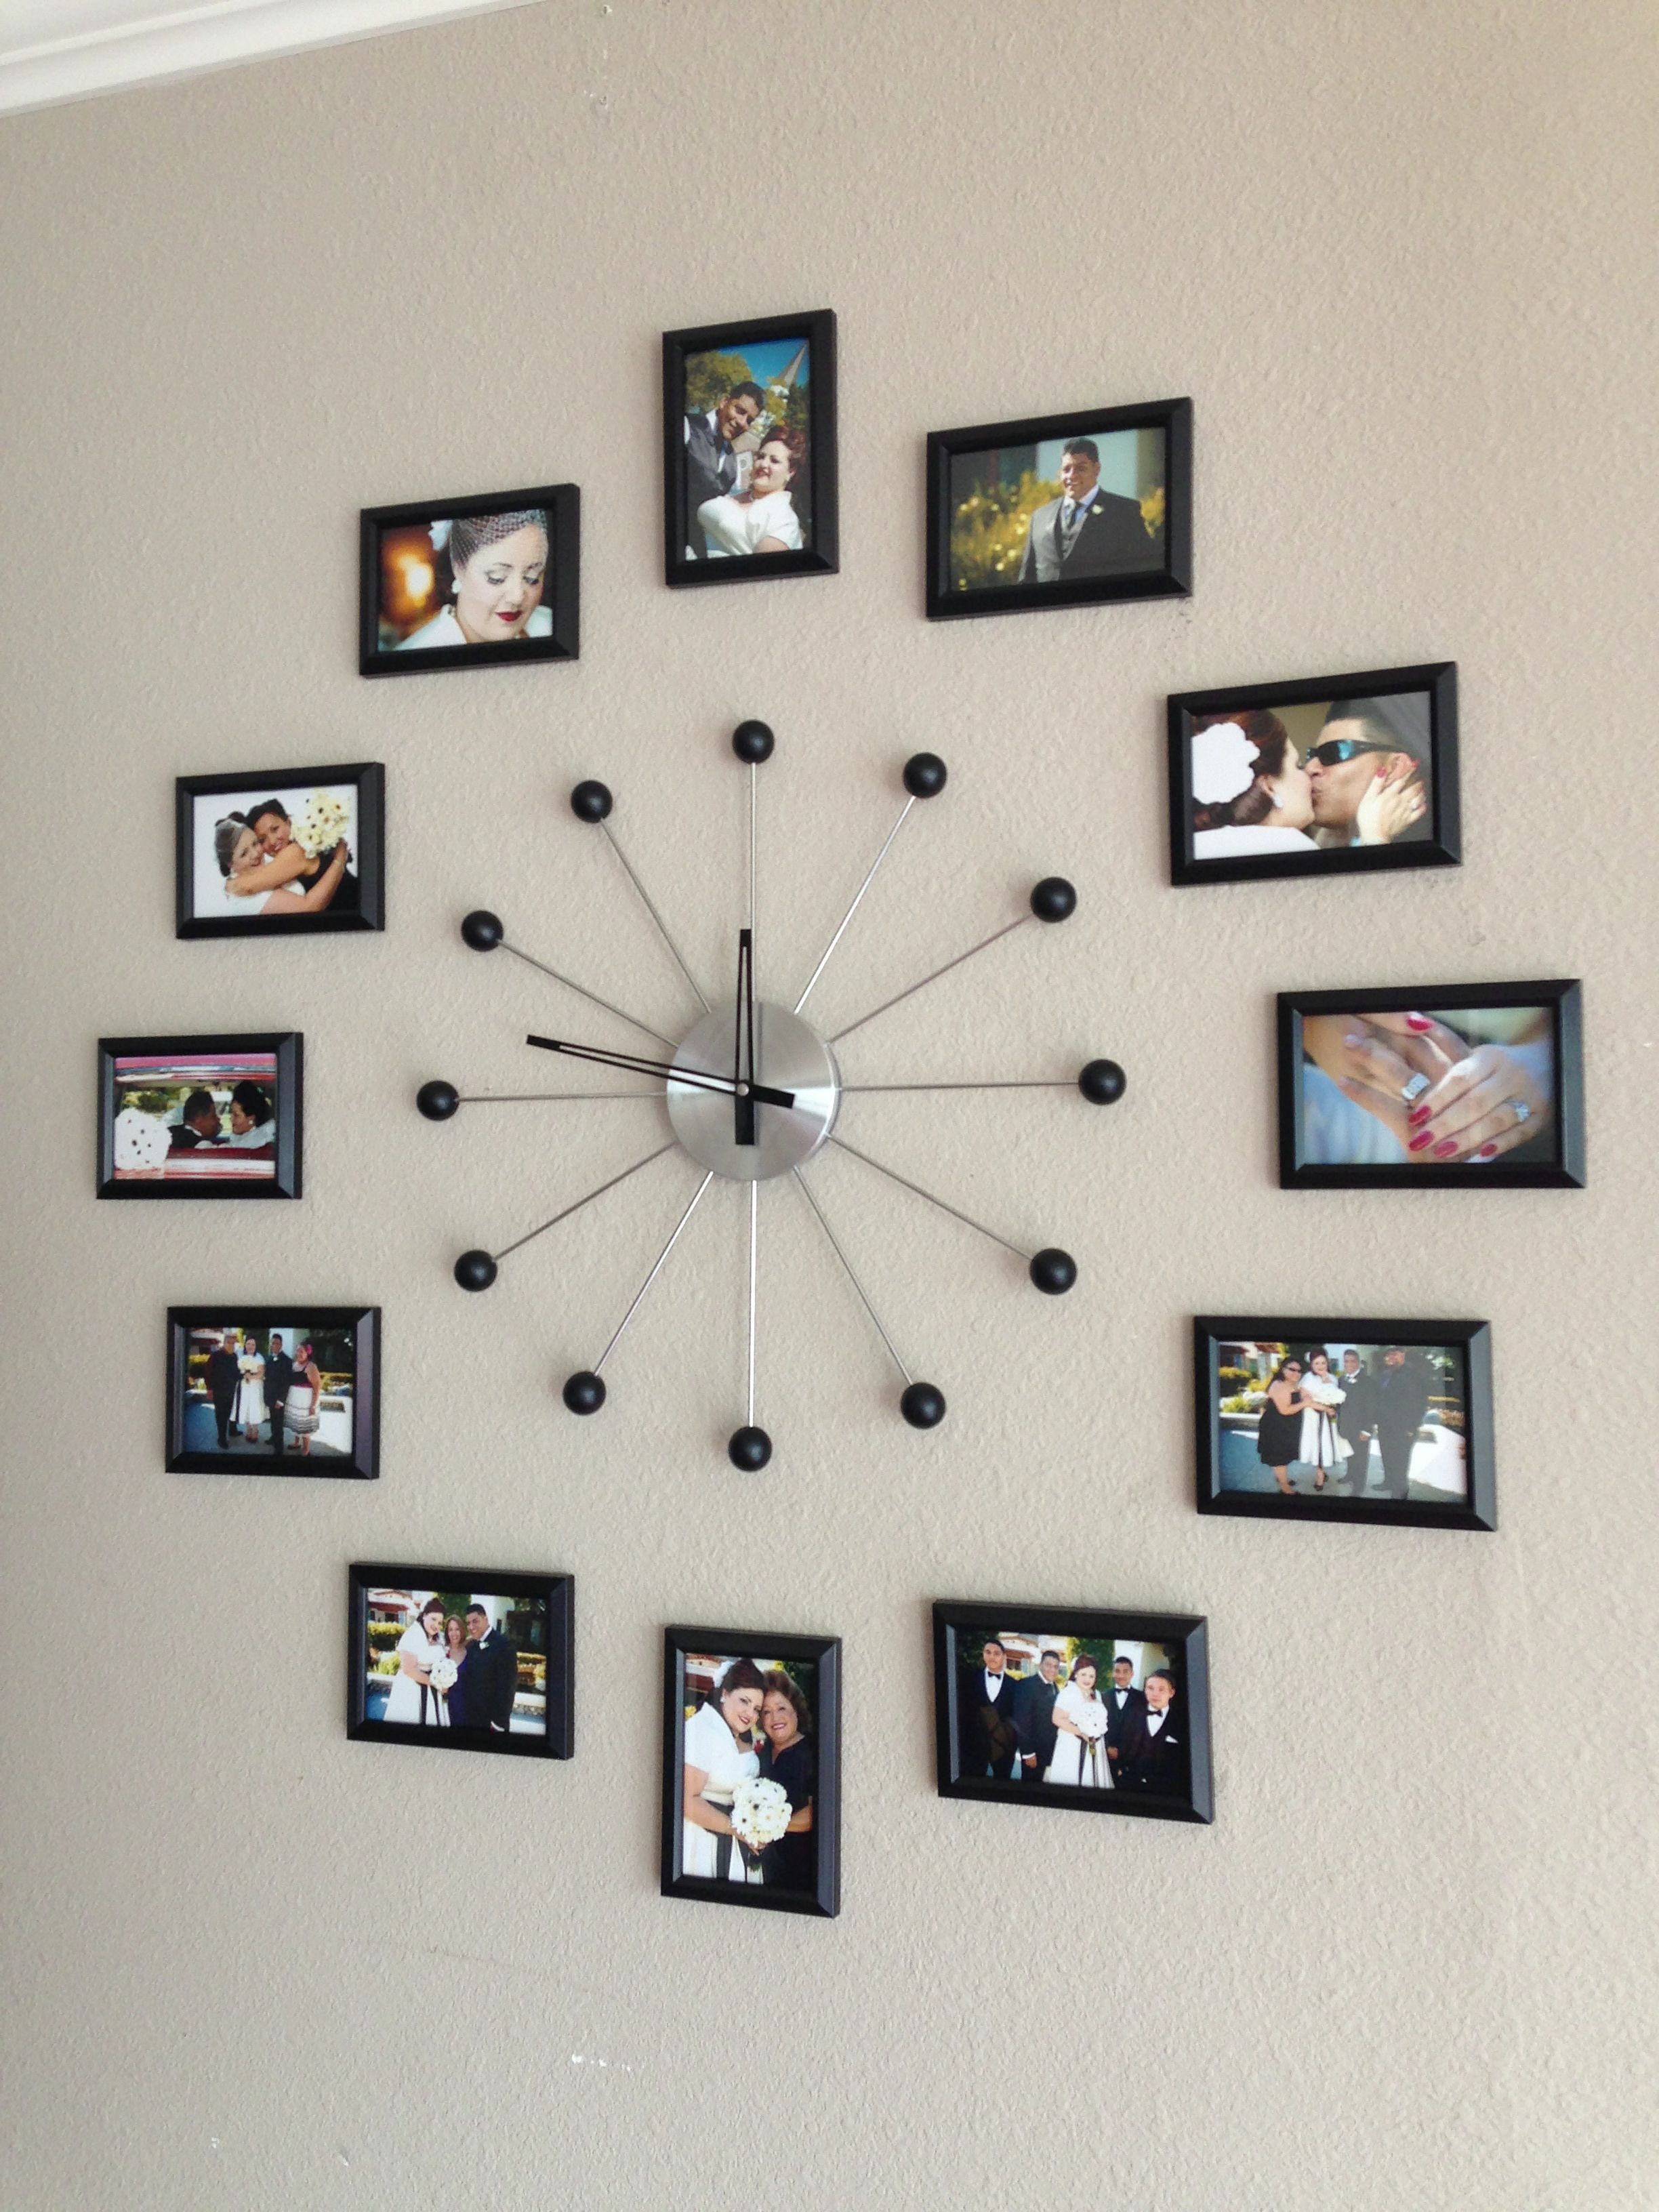 10 Fascinating Diy Wall Photo Collage Ideas For Best Home Interior In 2020 Frame Wall Collage Wall Decor Living Room Home Decor Baskets